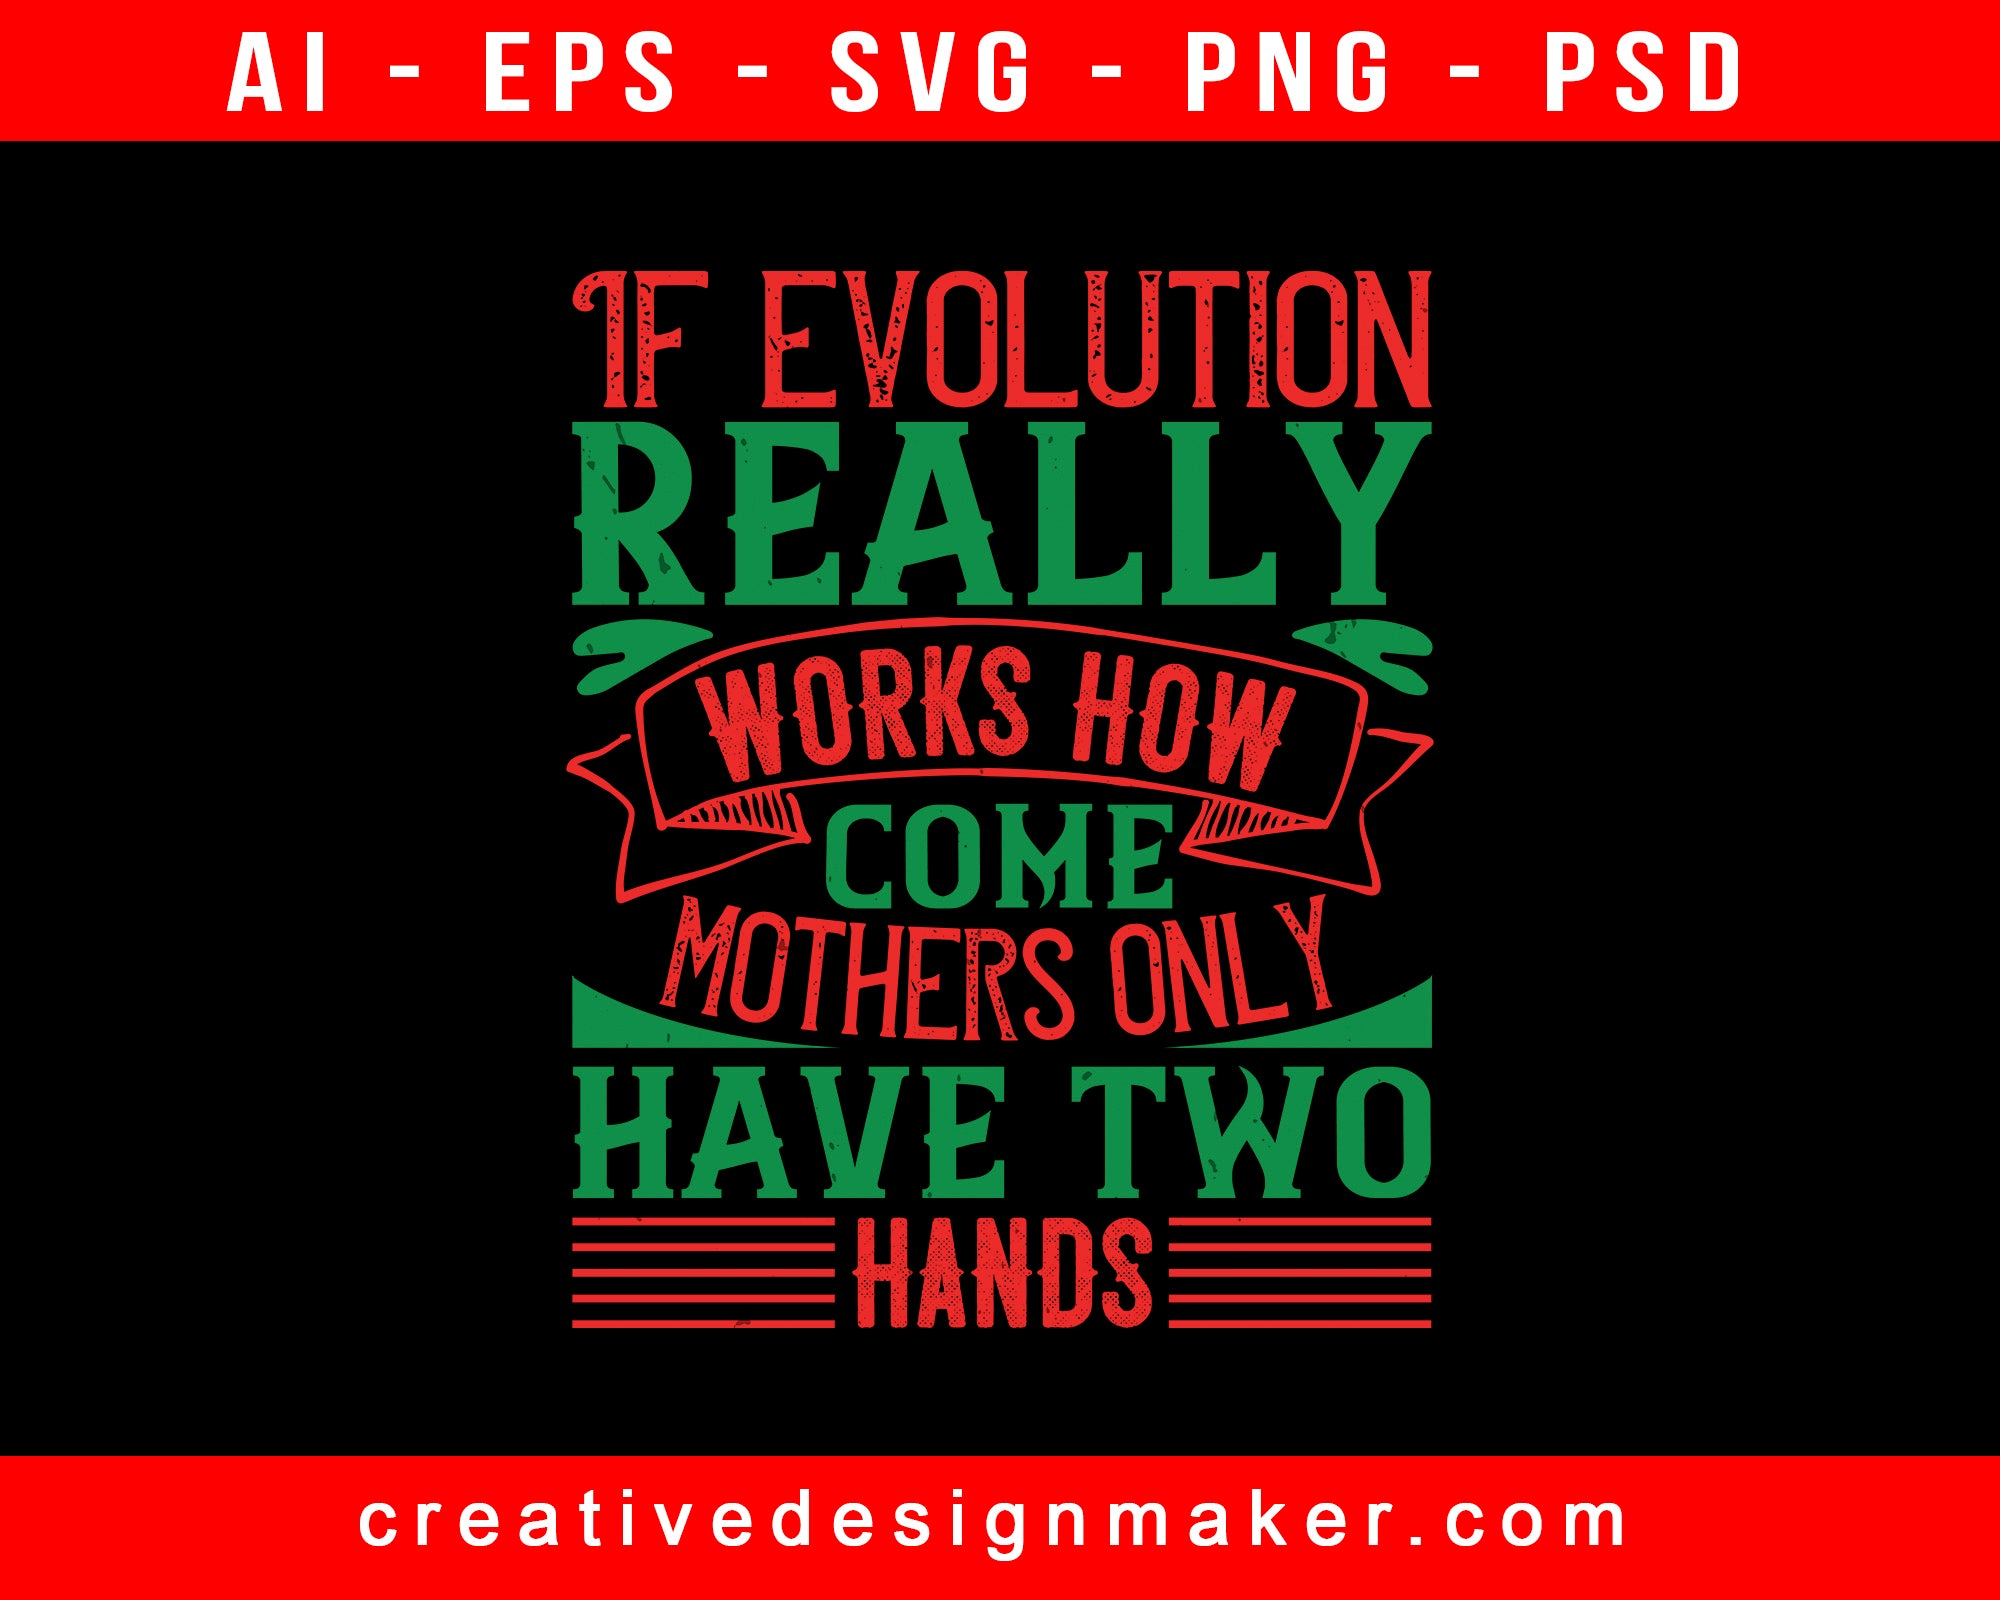 If Evolution Really Works, How Come Baby Print Ready Editable T-Shirt SVG Design!